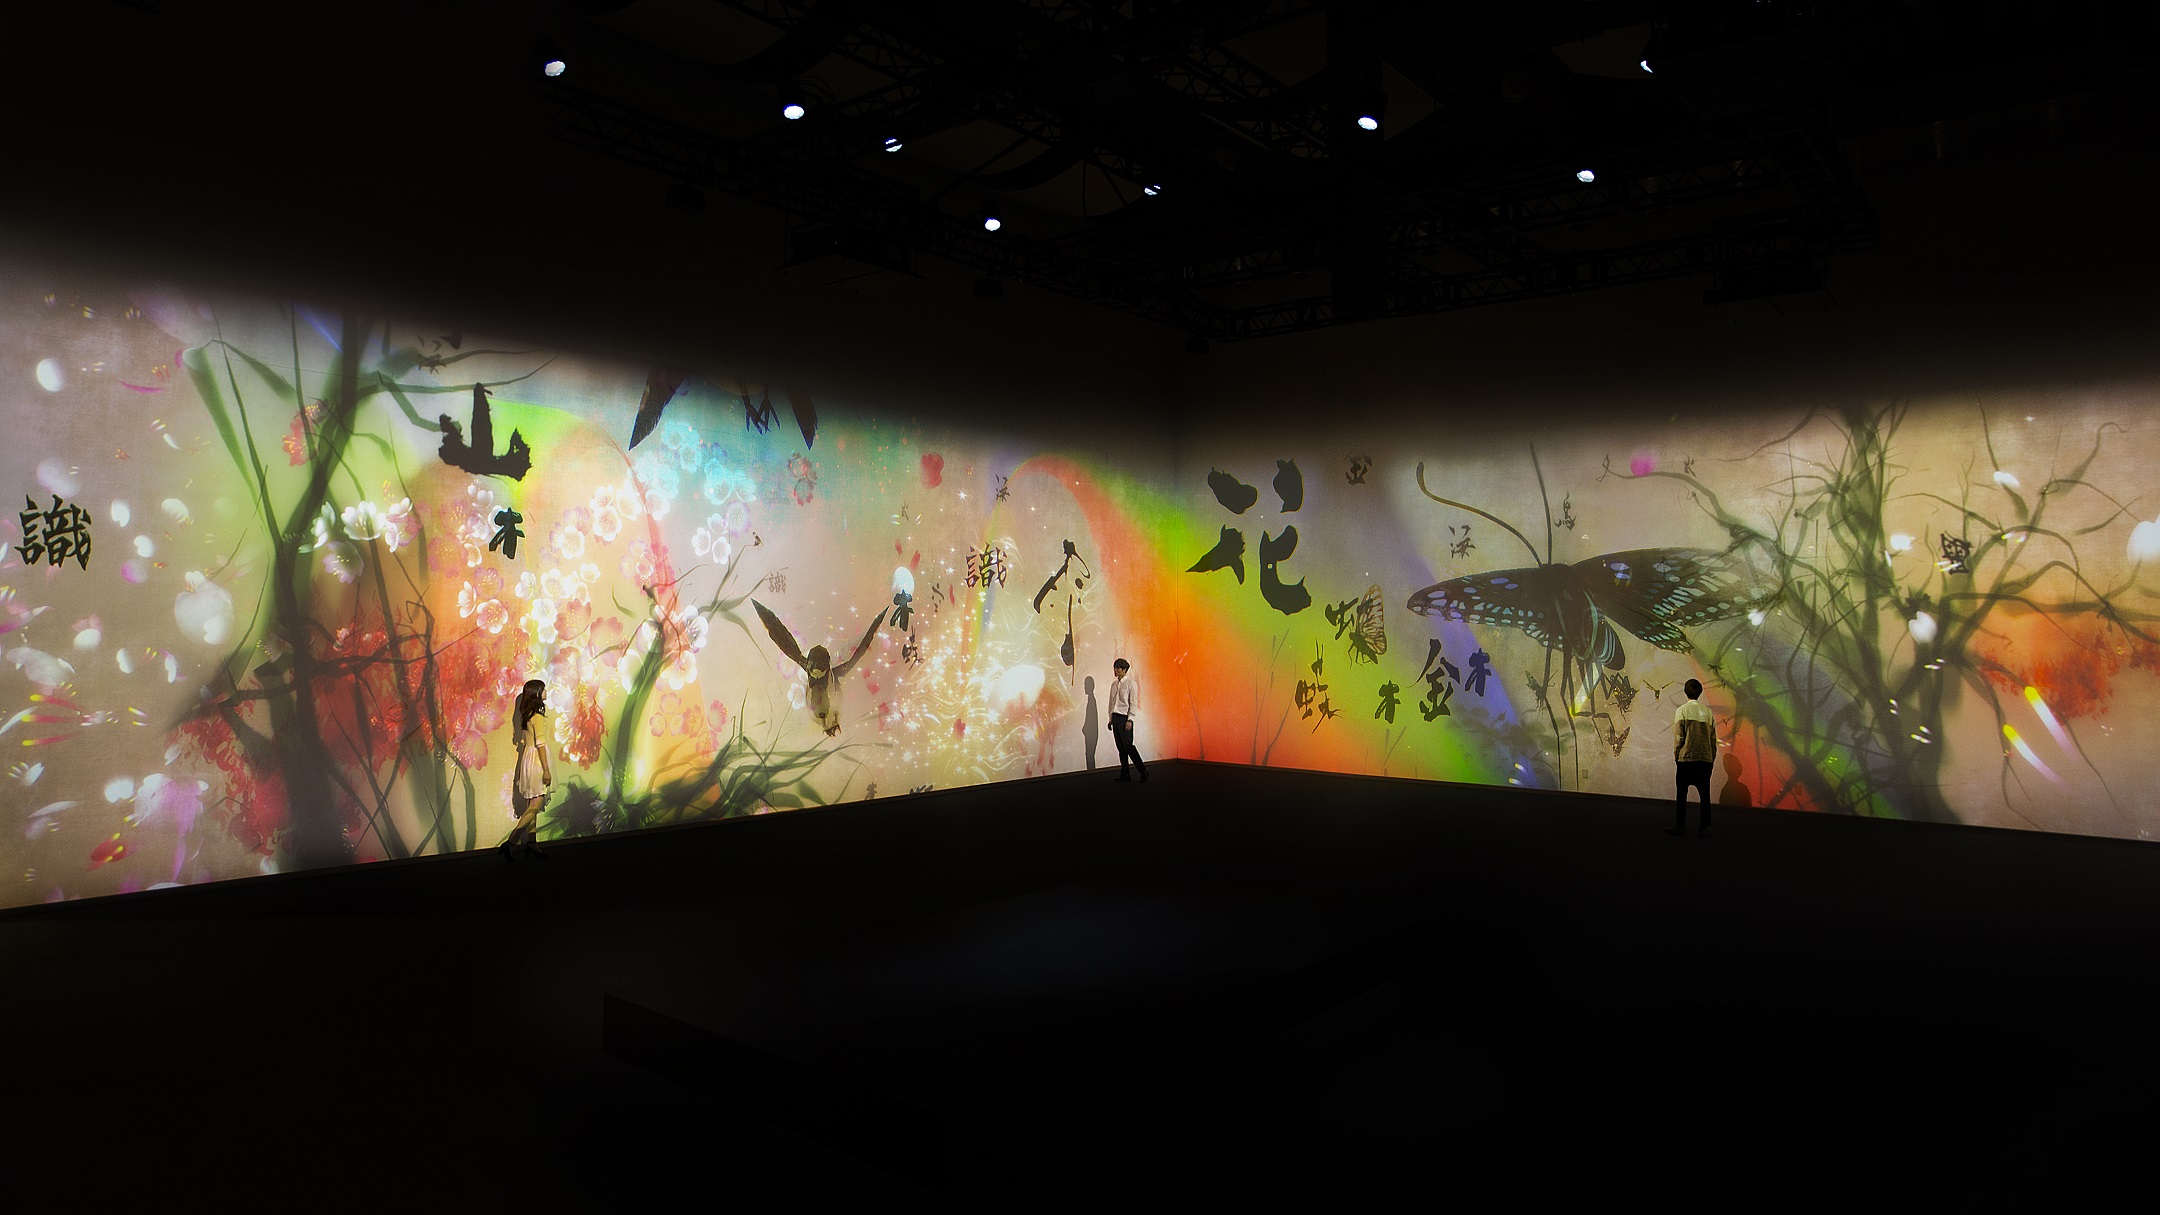 Image credit: Sisyu + teamLab, What a Loving, and Beautiful World (2011)